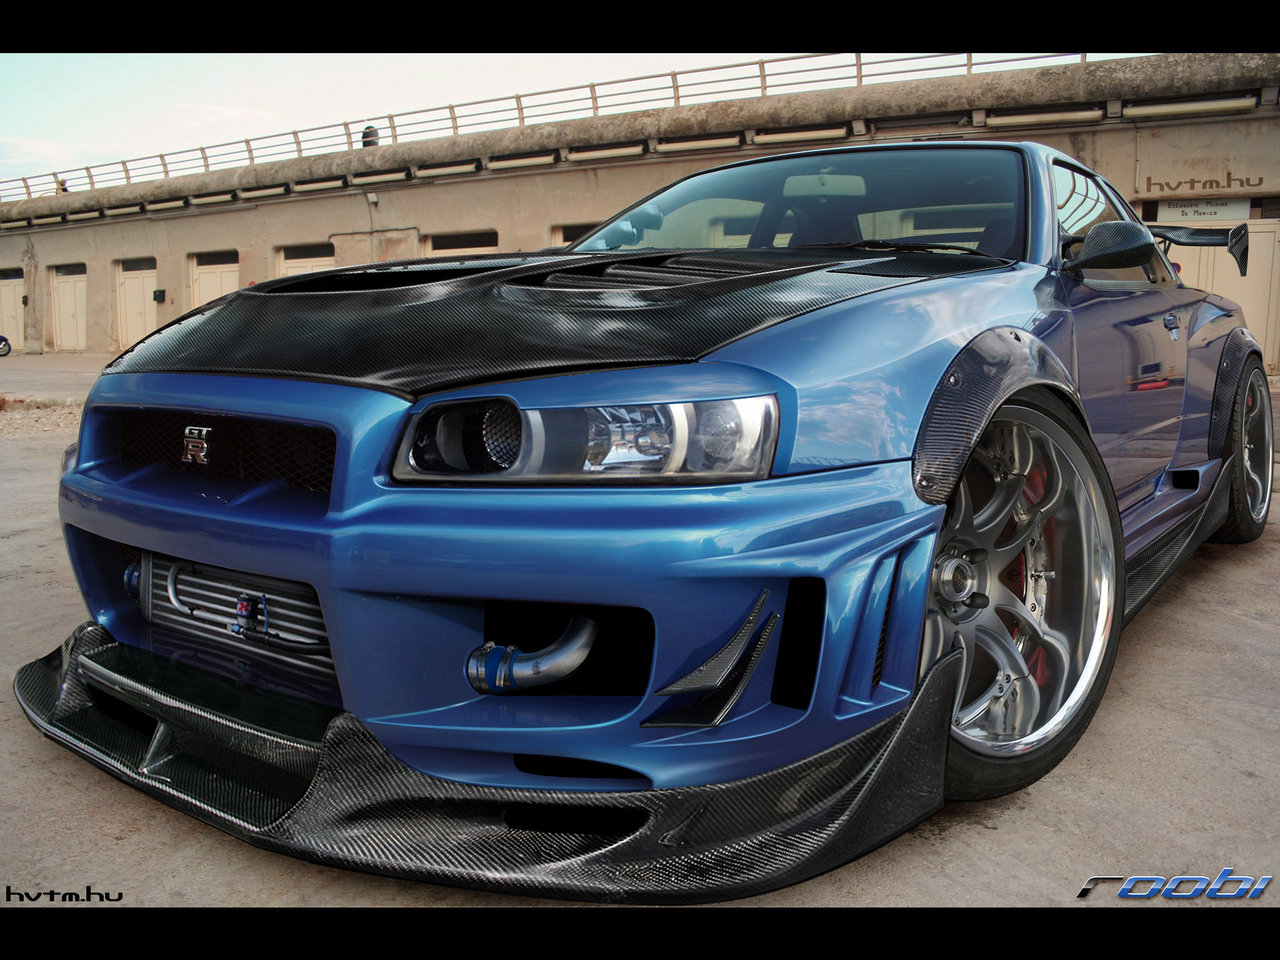 AUTO CARS PROJECT: Nissan Skyline gtr Pictures and Wallpapers